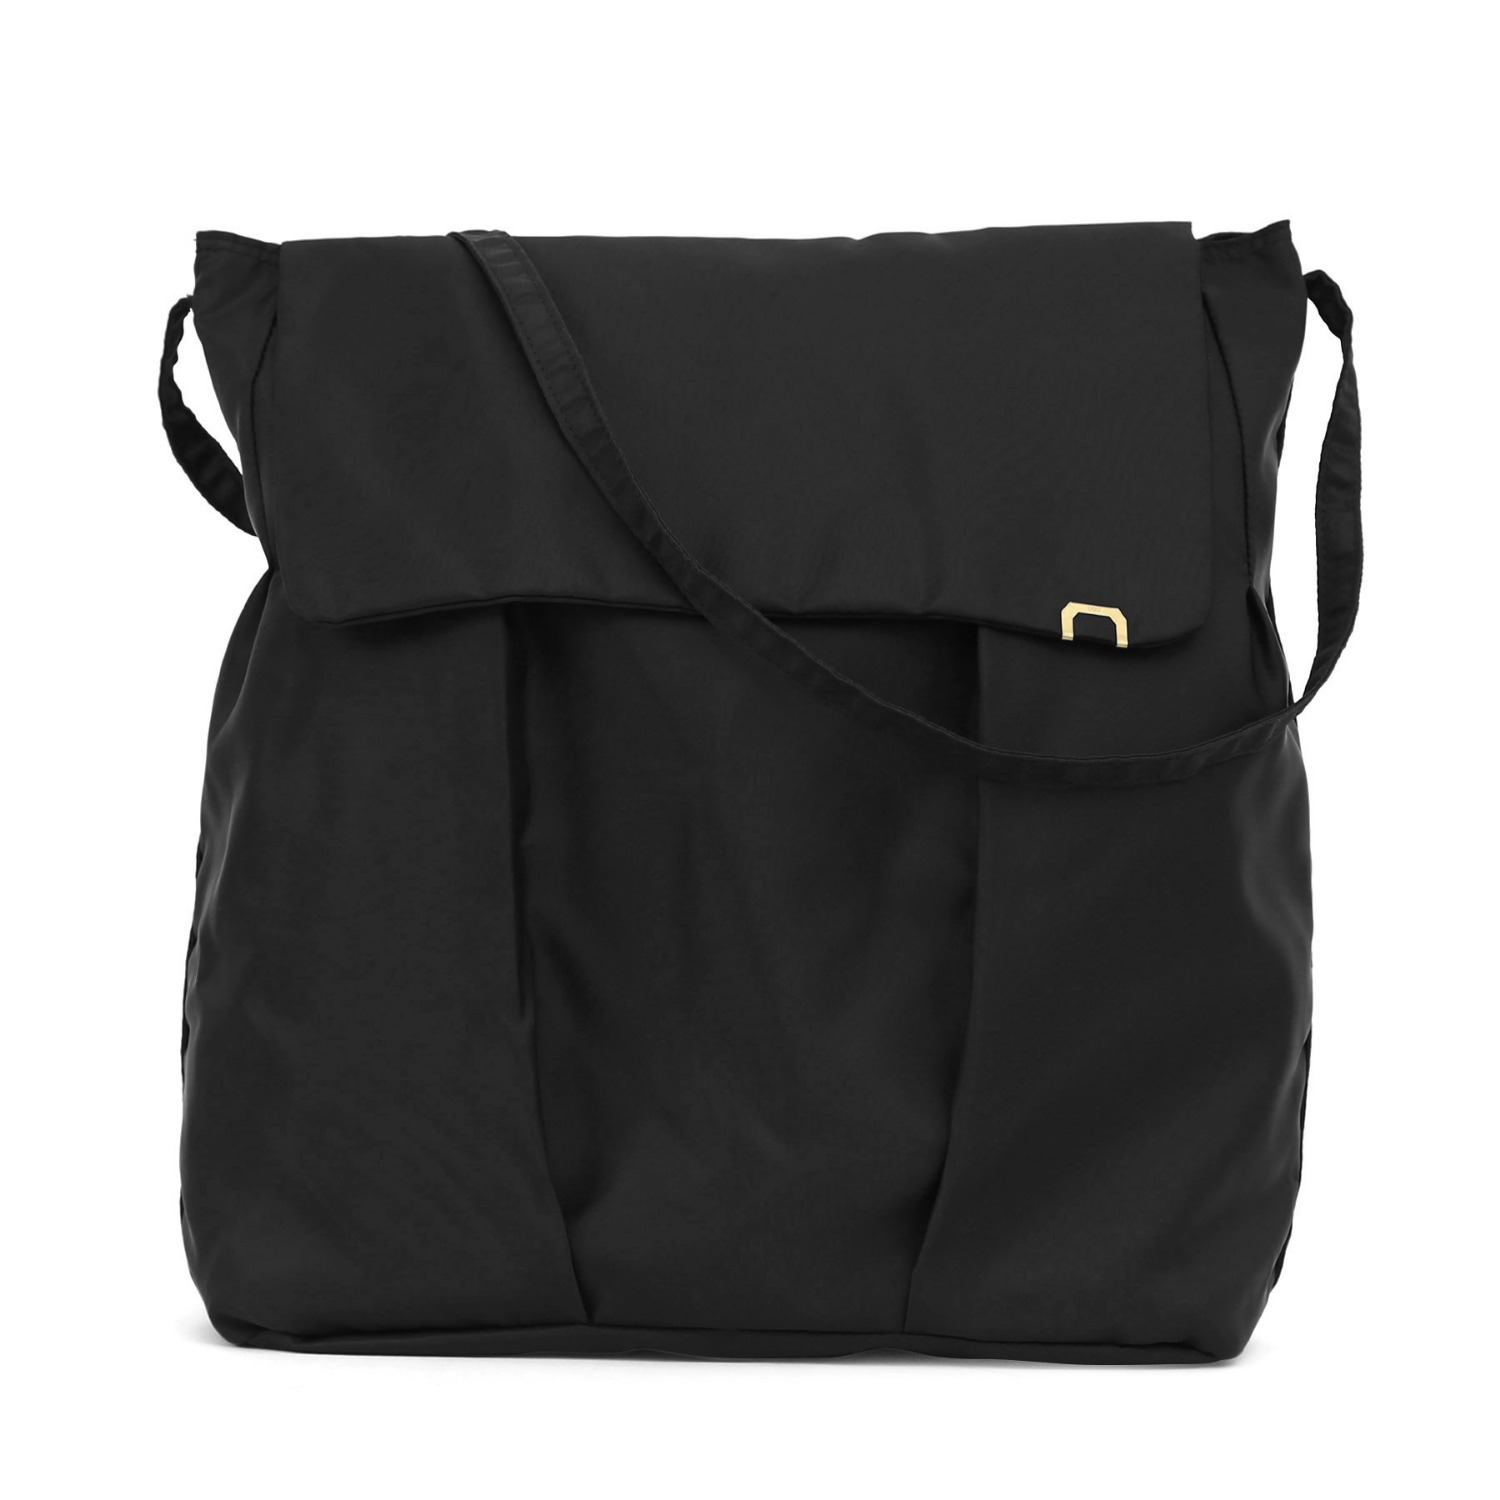 LADDER BAG / WRINKLE / N TWILL / BLACK